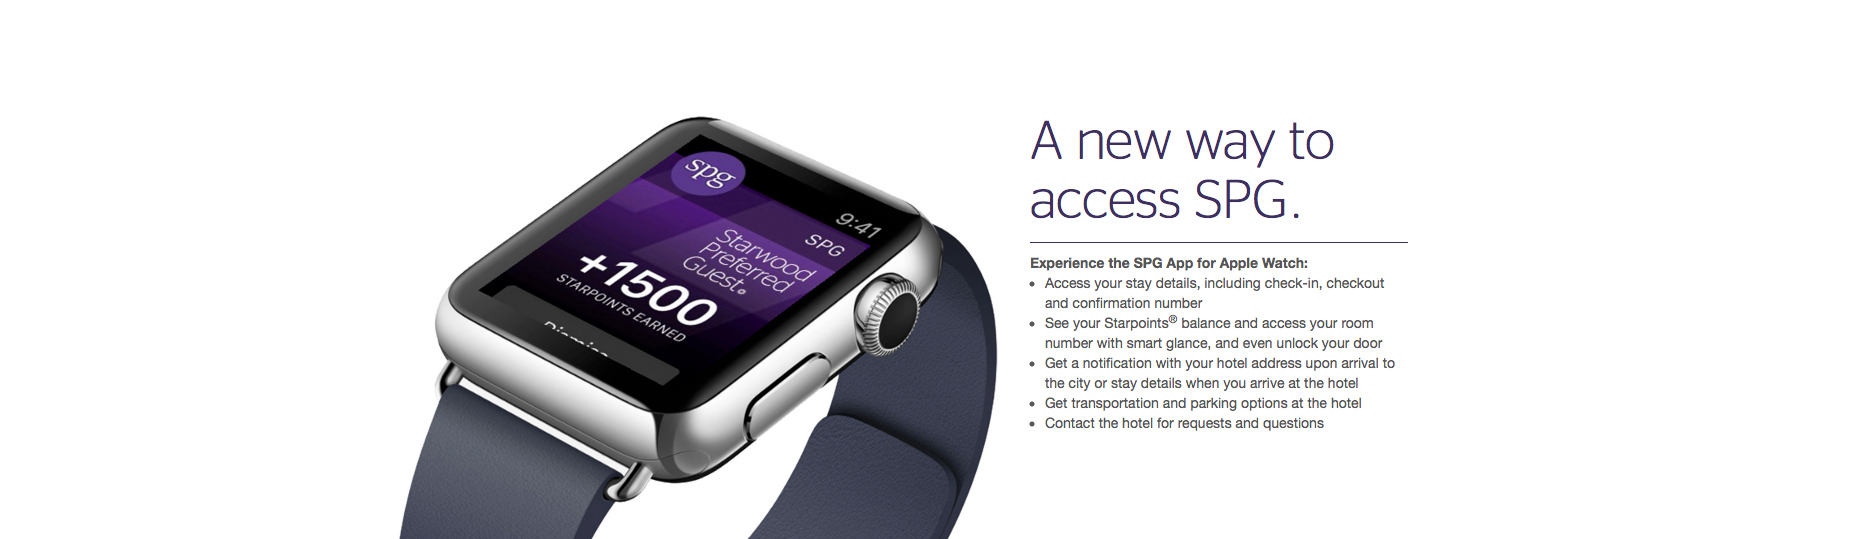 Check-in and open your hotel room door with the Starwood SPG app for Apple Watch